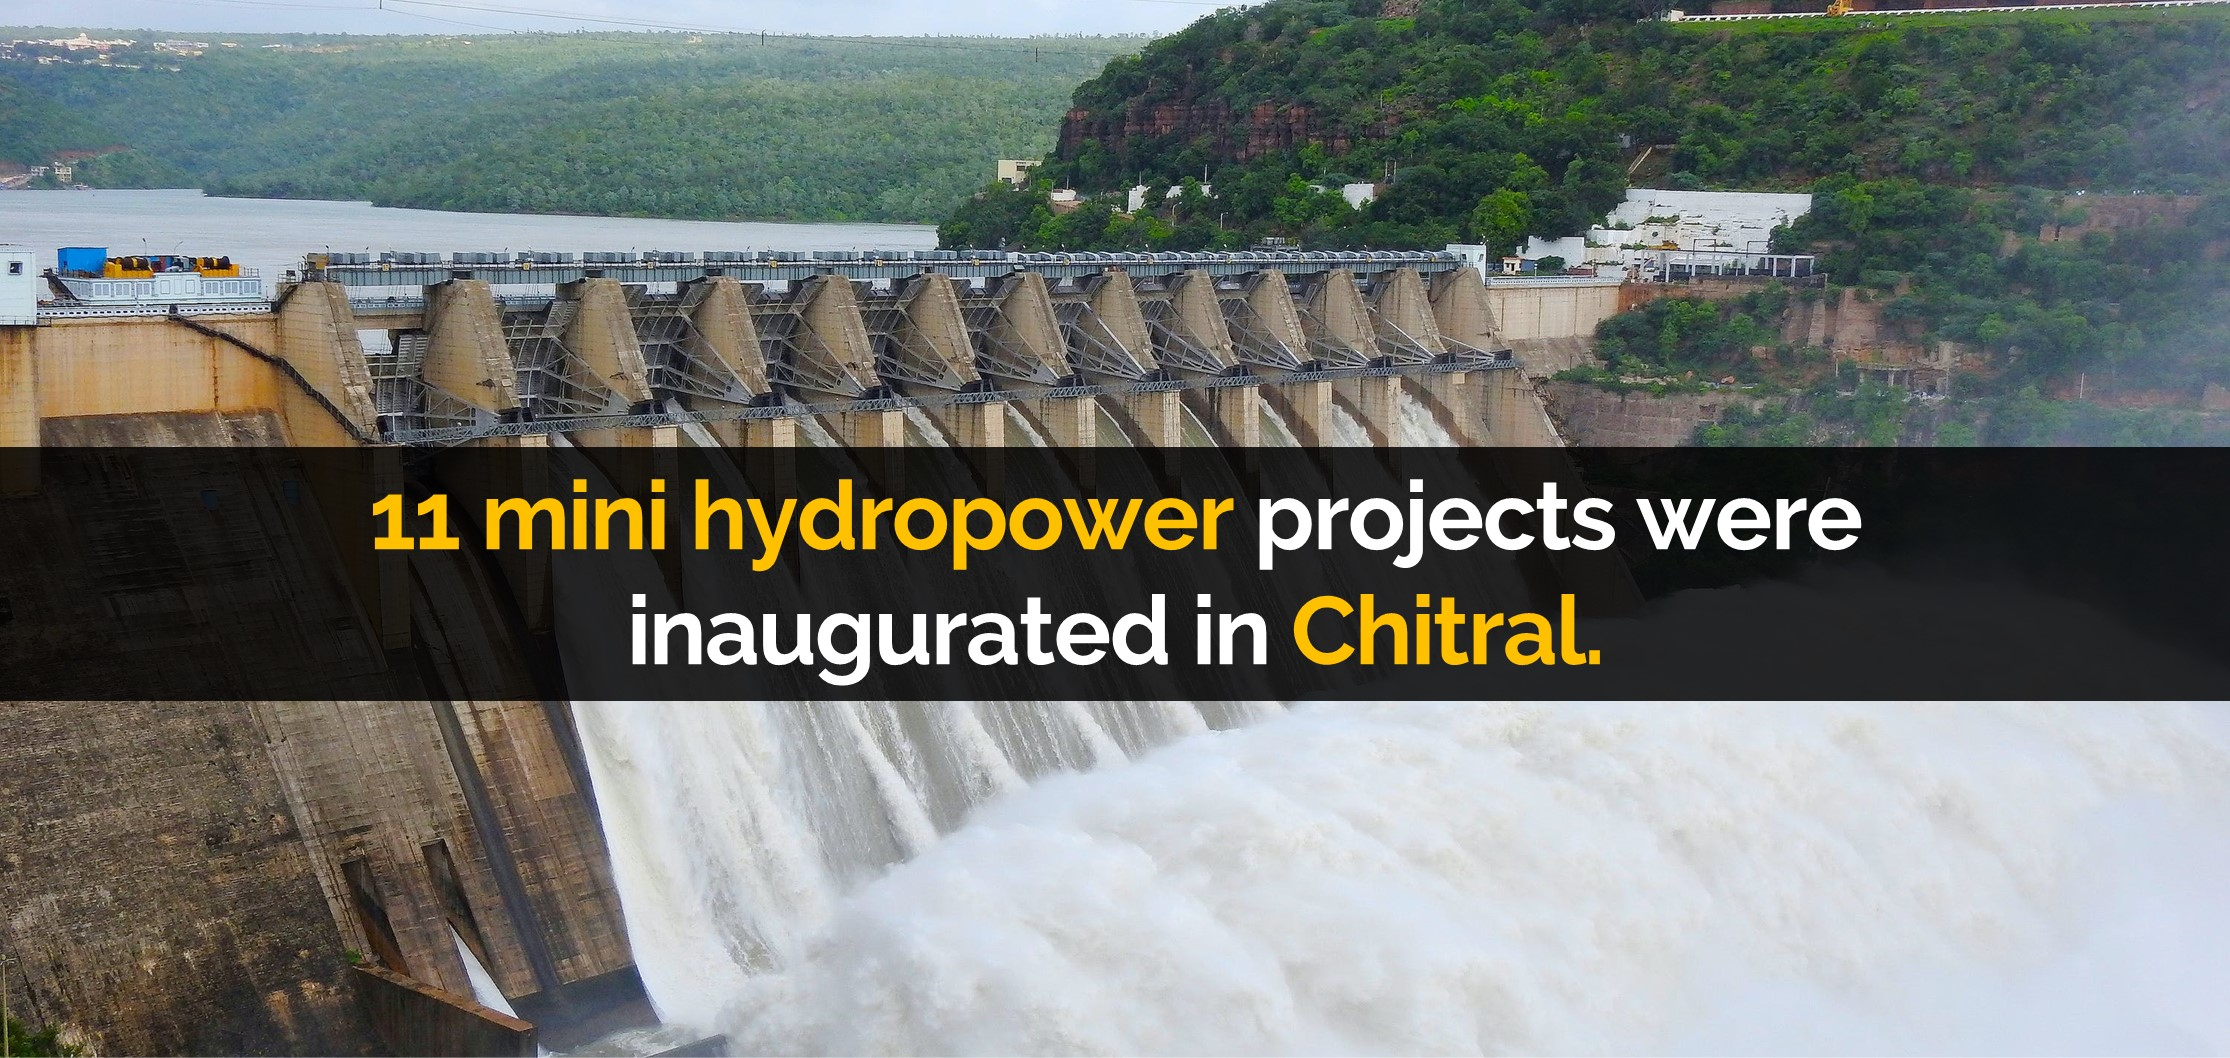 11 mini hydro power projects were inaugurated in Chitral.